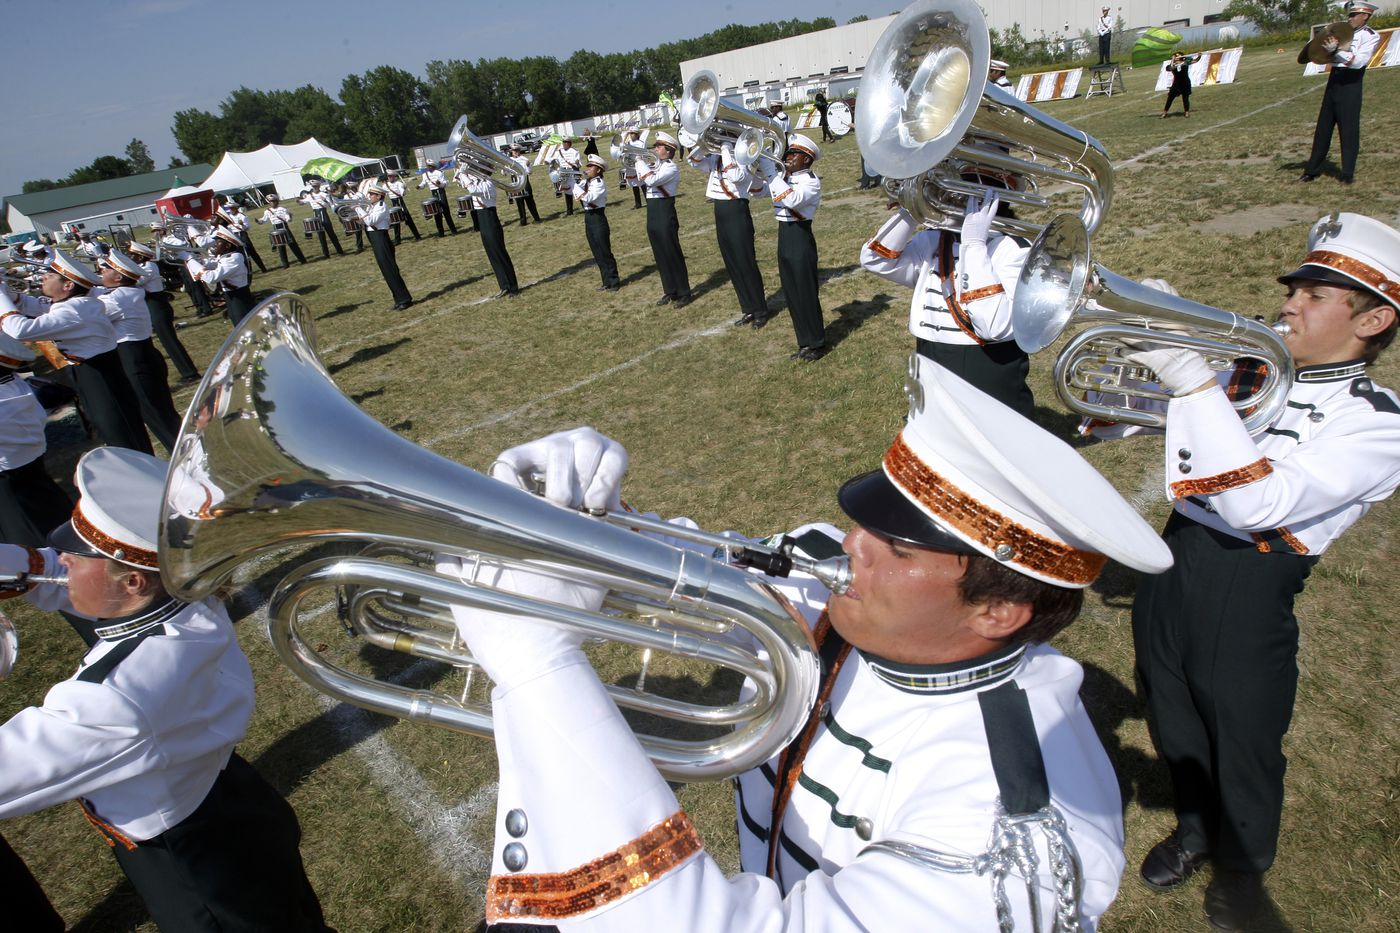 Broke-down buses, Ibuprofen, and a sex offender: On the road with Pioneer Drum Corps